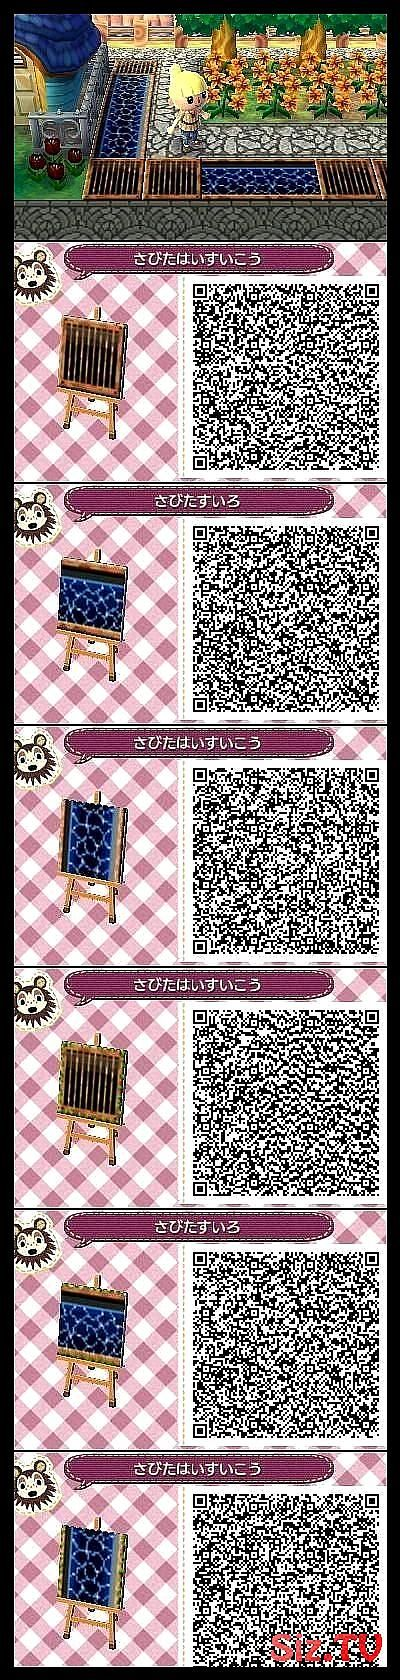 Animal Crossing QR Code  Floor  Paths  Floor  Paths Animal Crossing QR Code  Floor  Paths  Floor  Paths